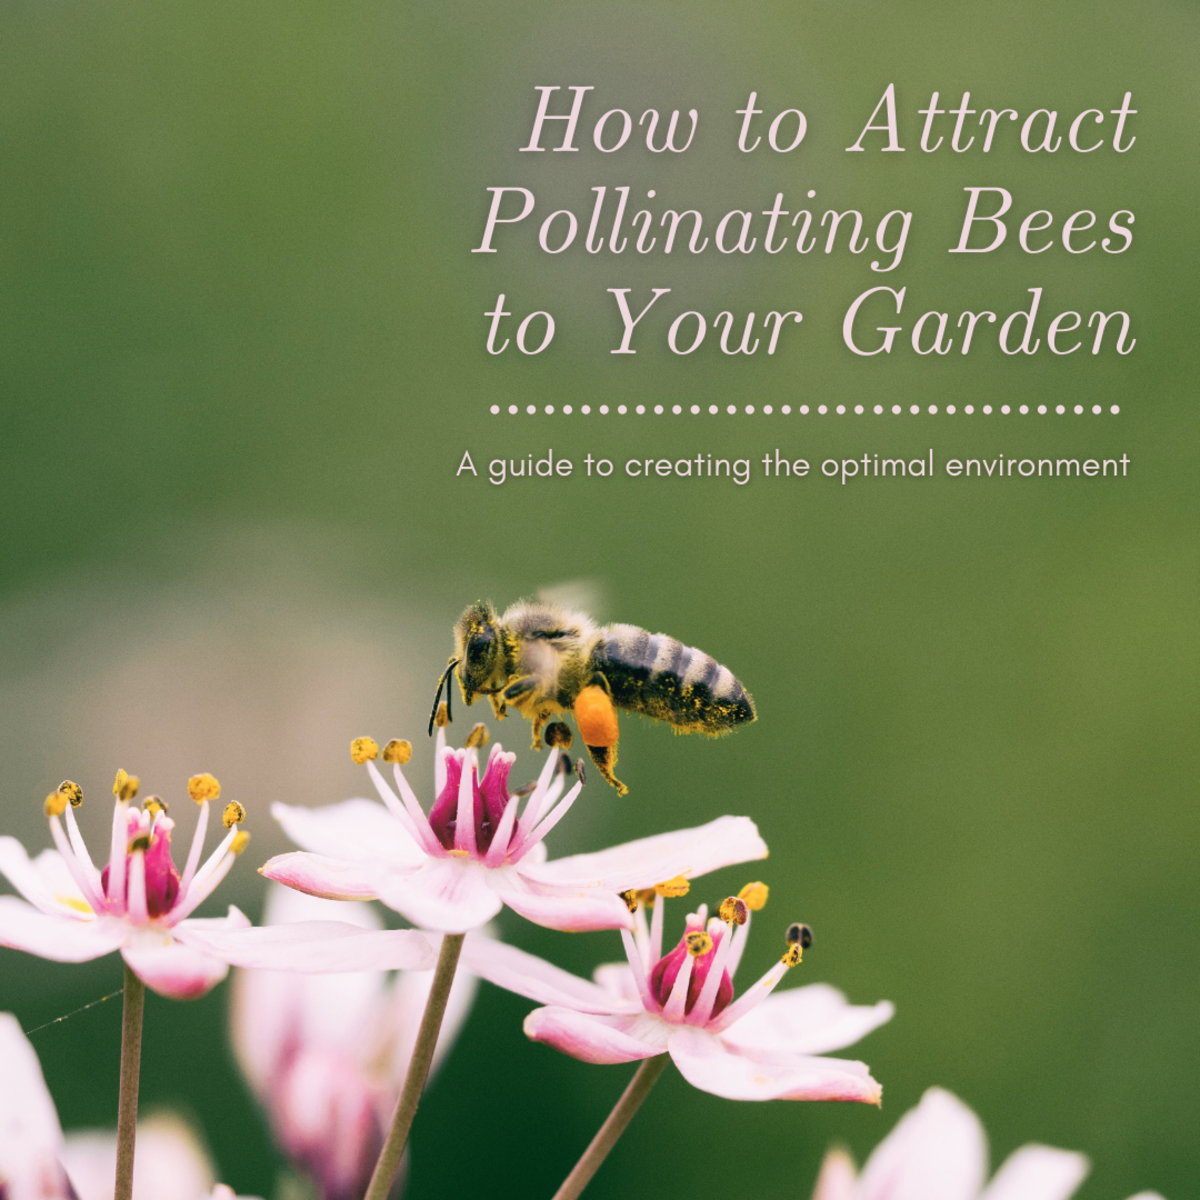 This article will provide you with plenty of information for creating the perfect environment to attract pollinating bees to your garden.